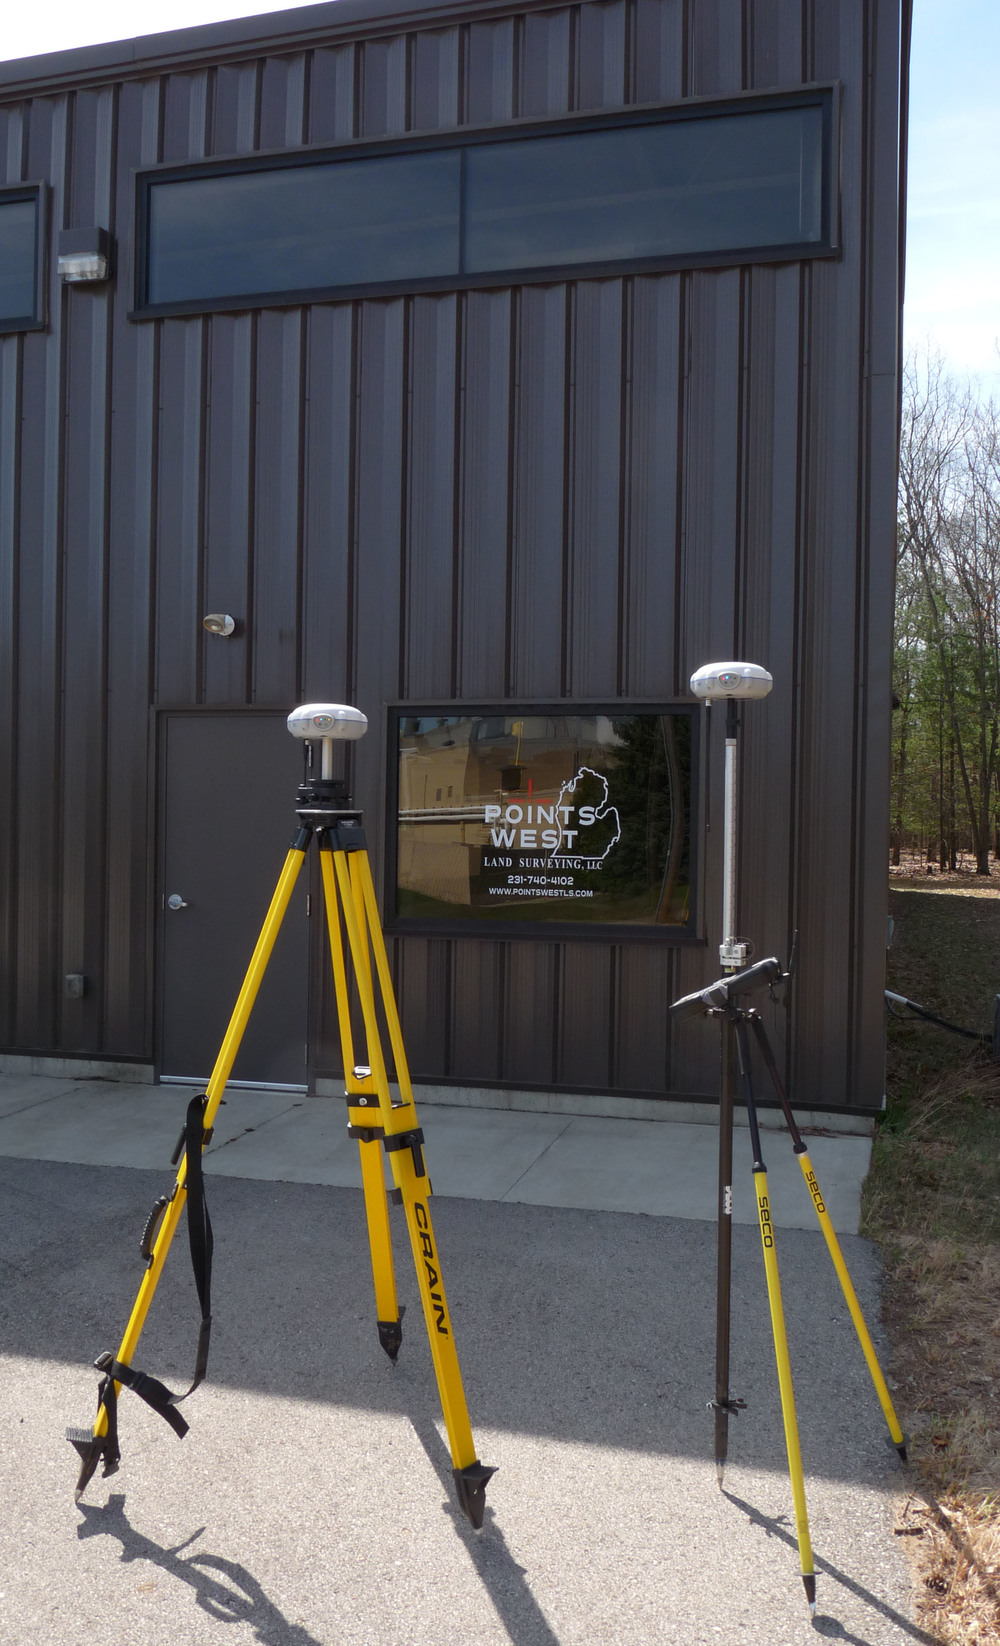 Points West Land Surveying is pleased to announce the acquisition of  a pair of  CHC  X91+  GNSS/GPS    Receivers.  The X91+ units are loaded with the third generation 220 channel  Trimble   BD970   multi-constellation processing engines for  Centimeter level positional accuracy and 99.9% positive solutions on  RTK initialization .